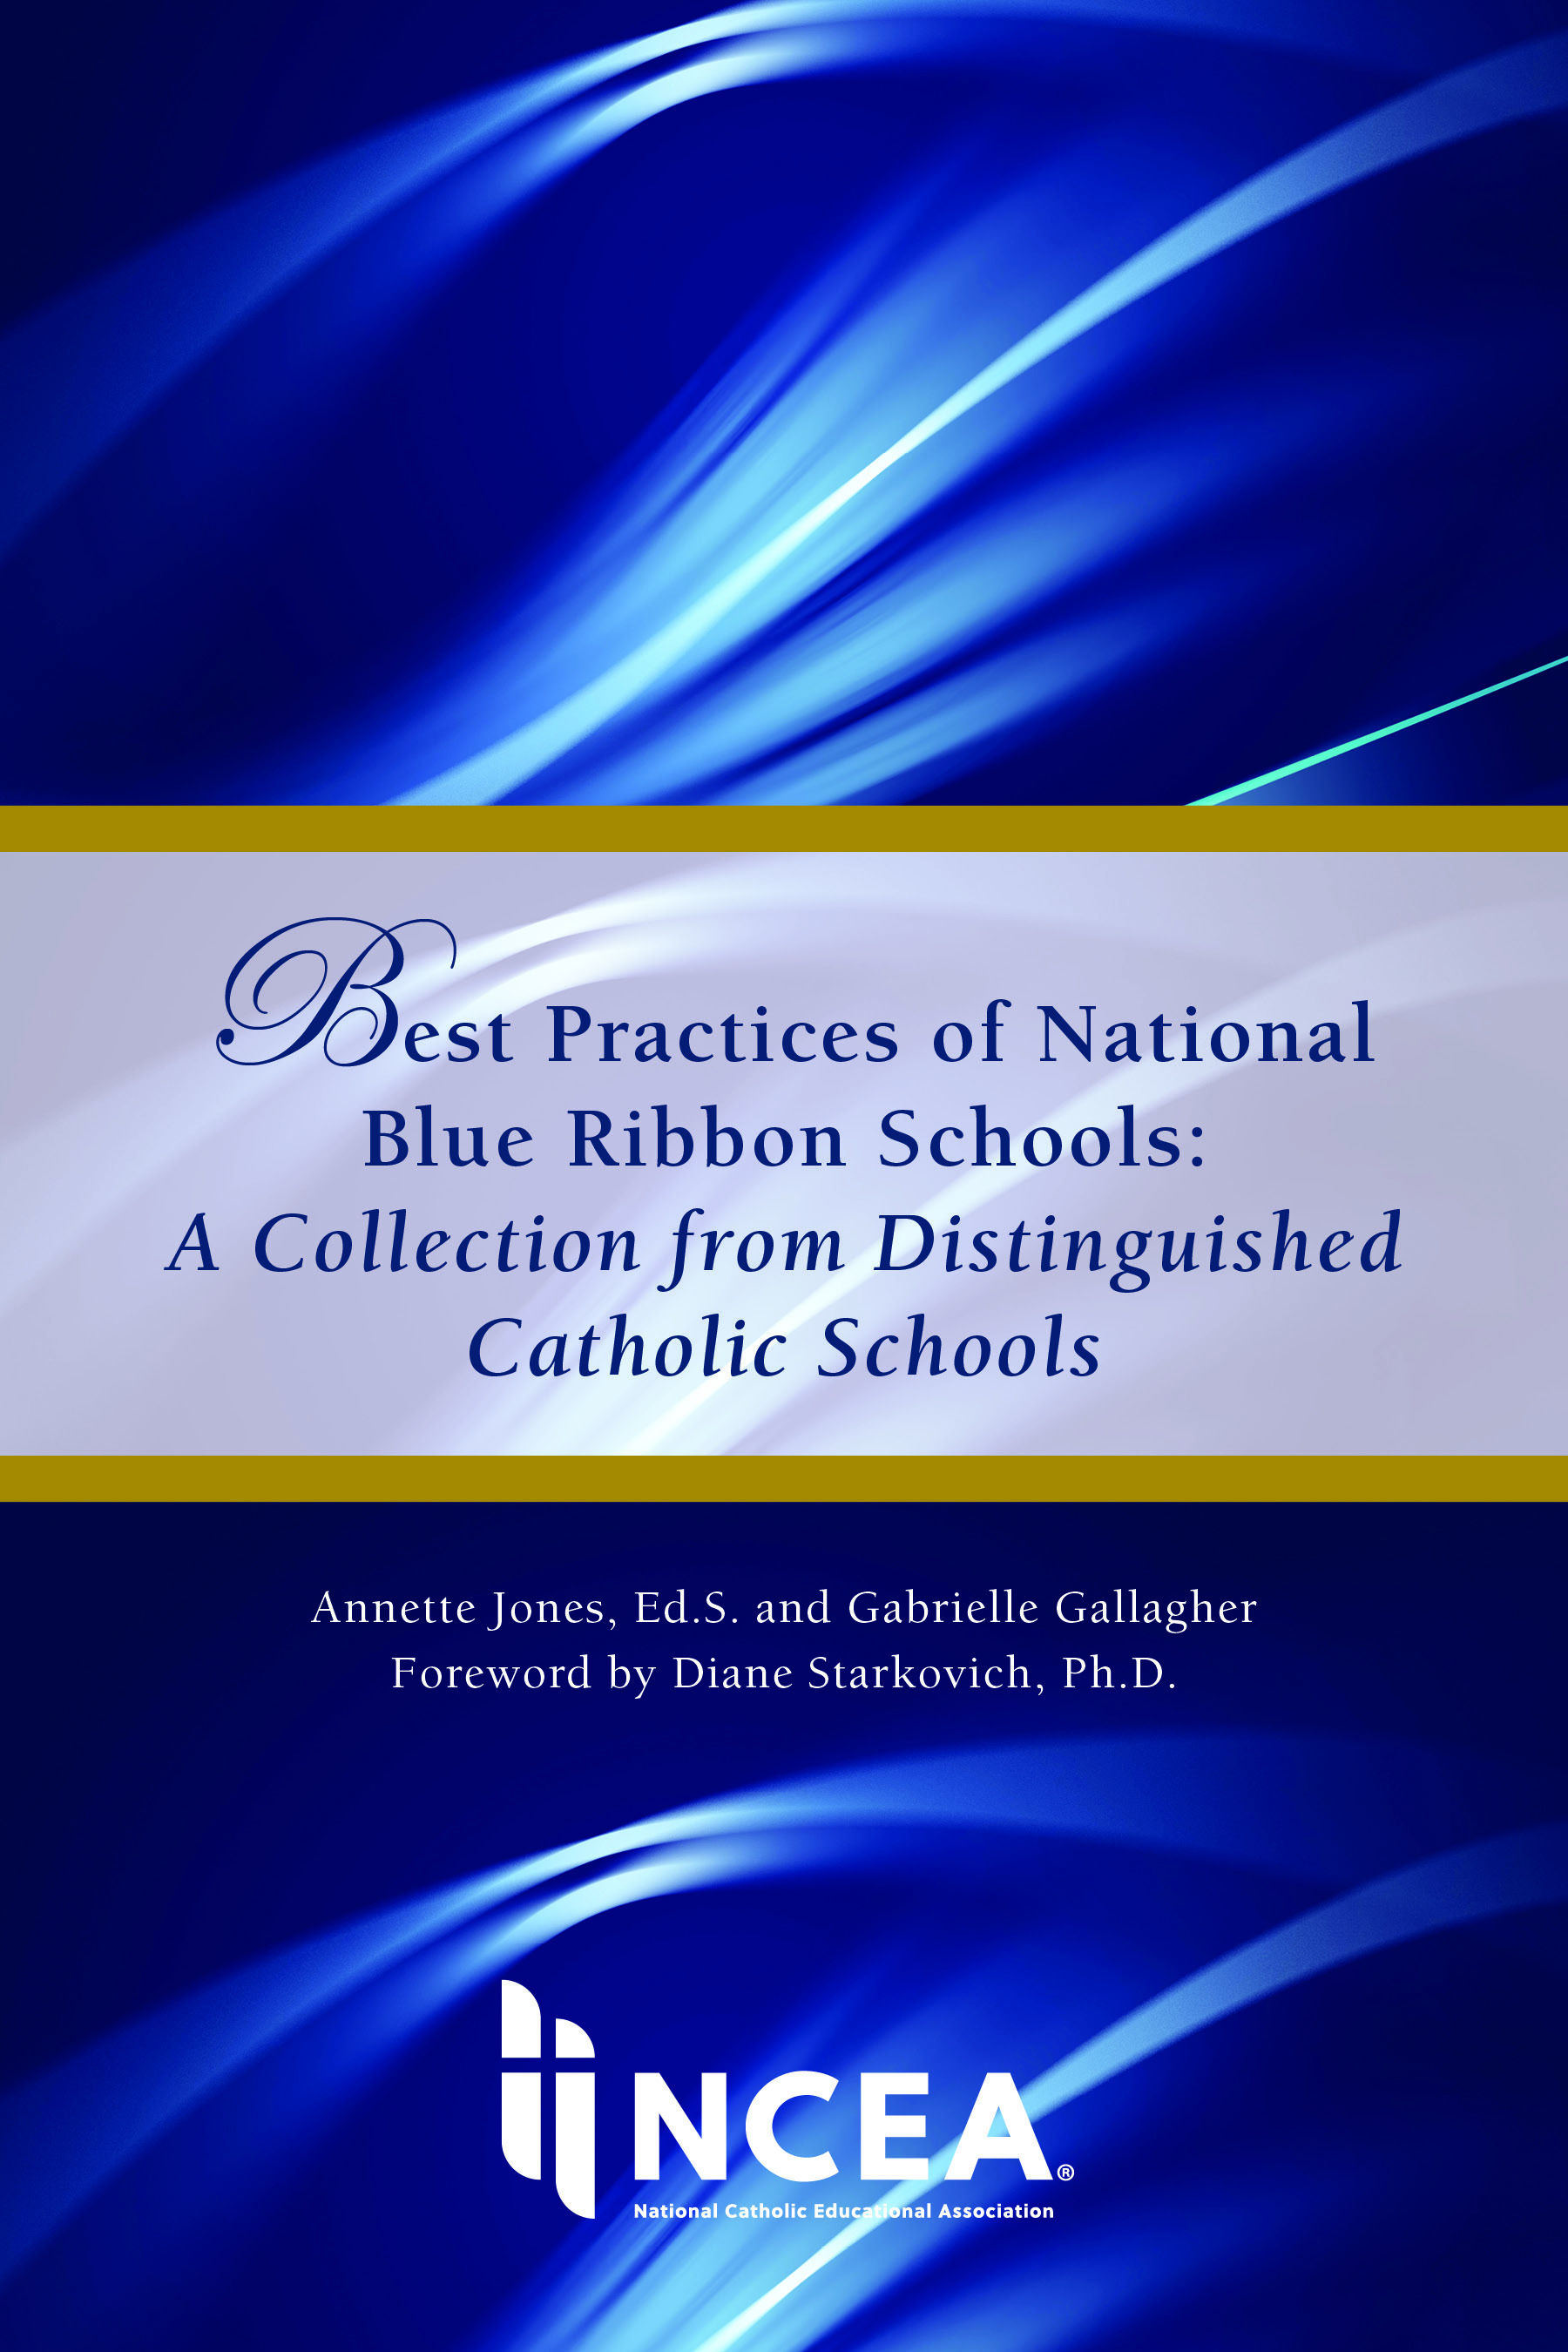 Best Practices of Blue Ribbon Schools: A Collection from Distinguished Catholic Schools